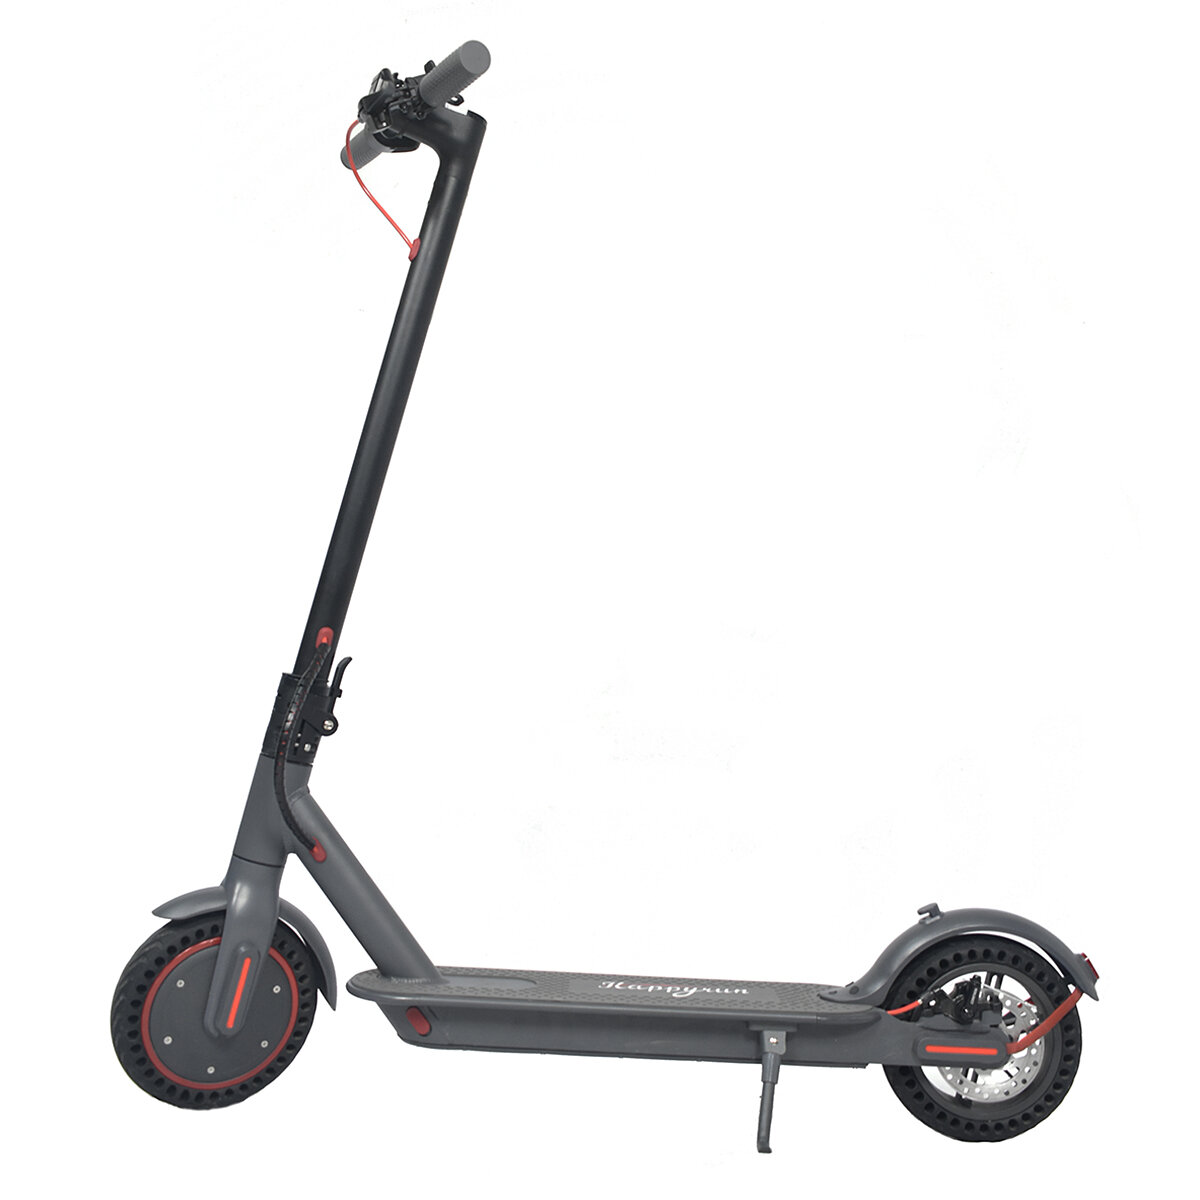 [EU DIRECT] Happyrun HR_15 36V 10.4Ah 350W Electric Scooter